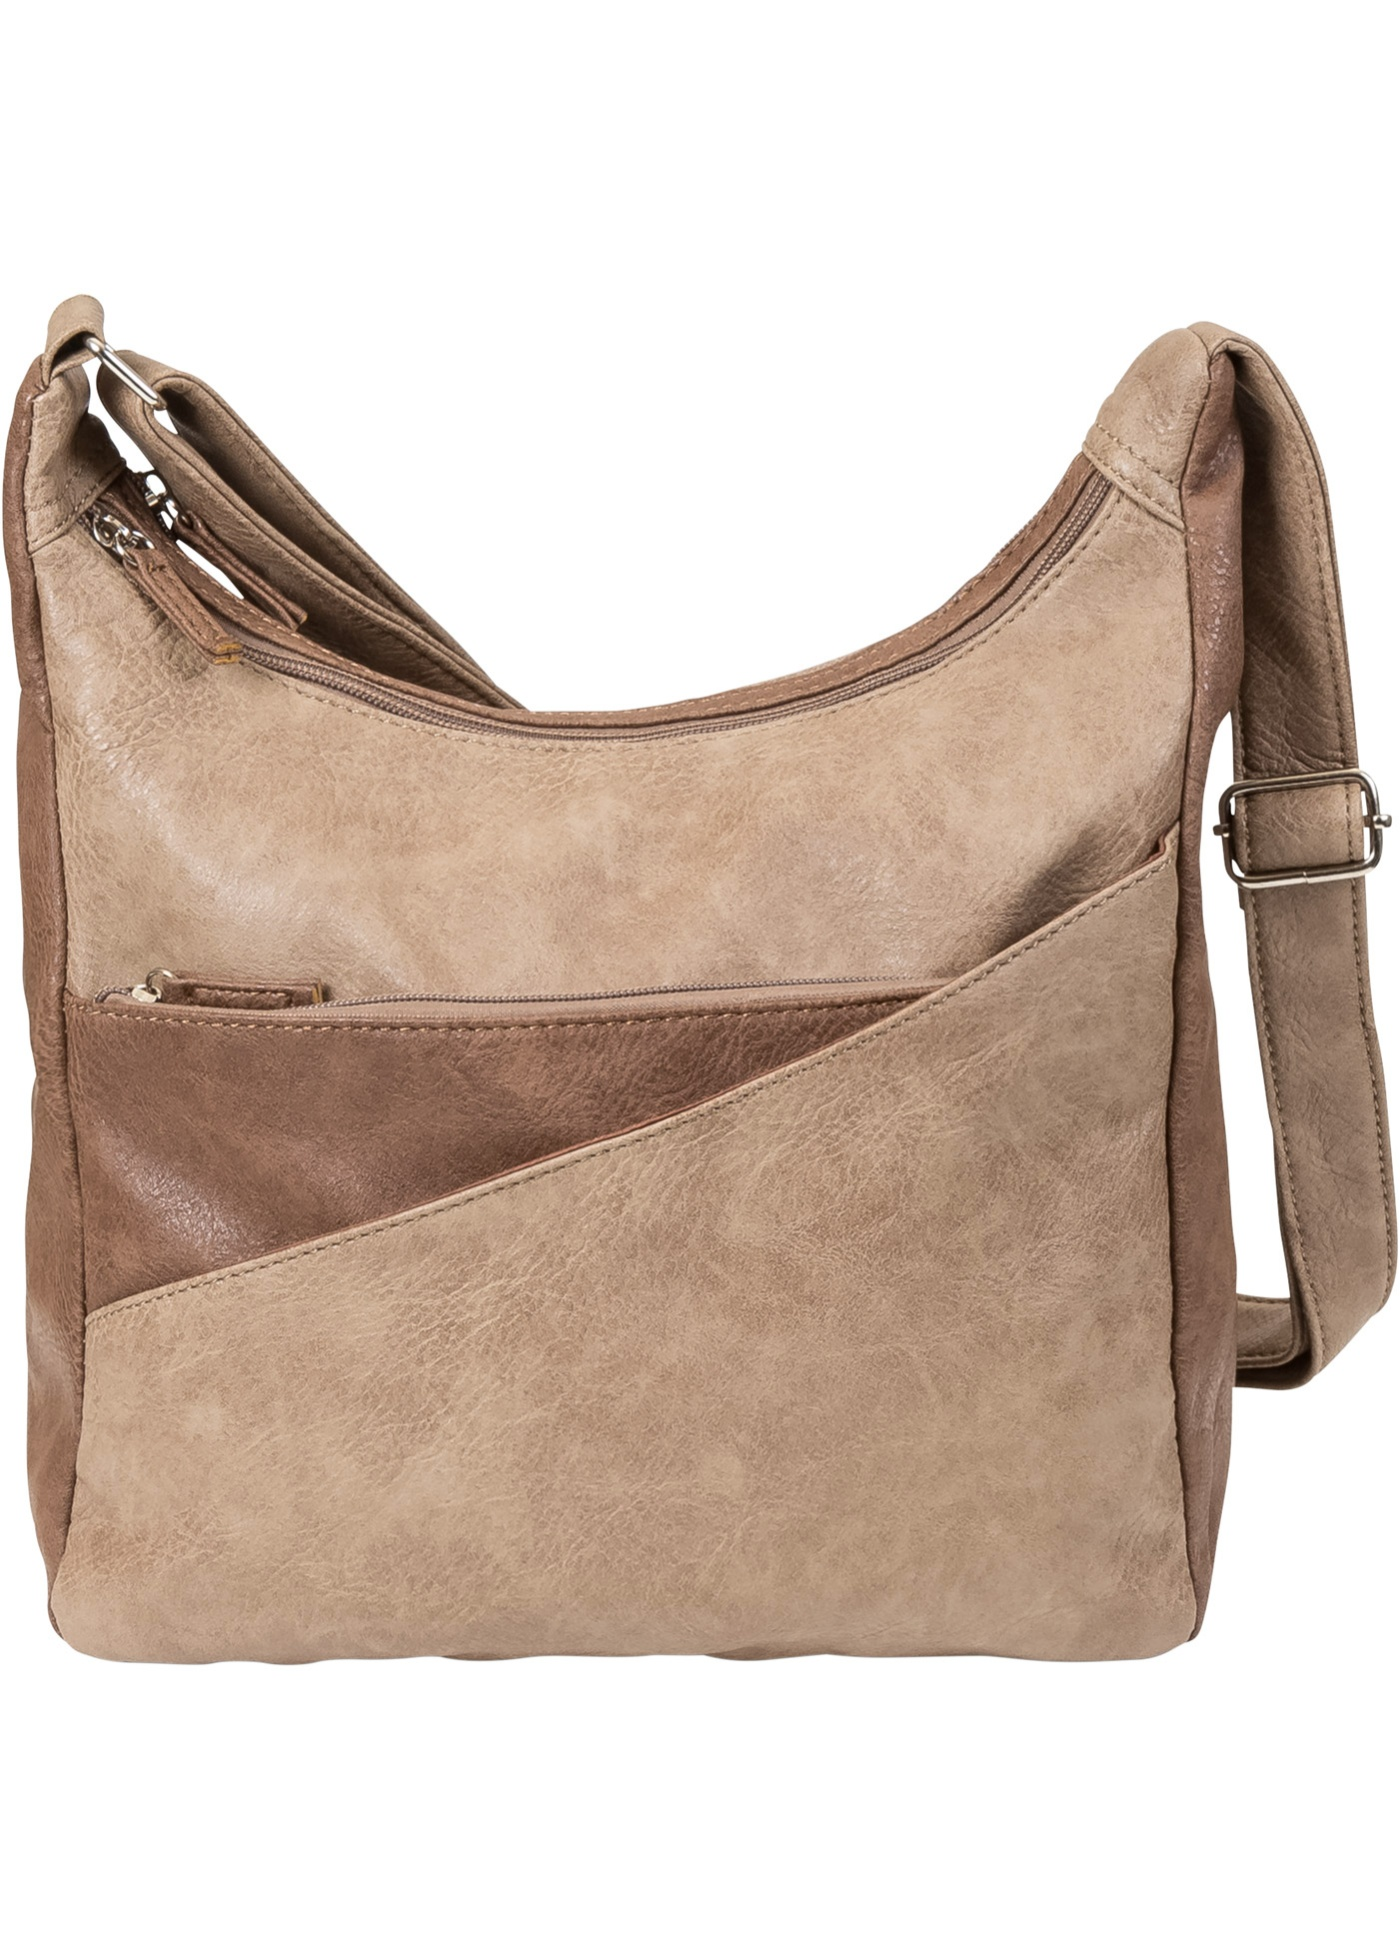 Borsa a tracolla Bicolor (Marrone) - bpc bonprix collection